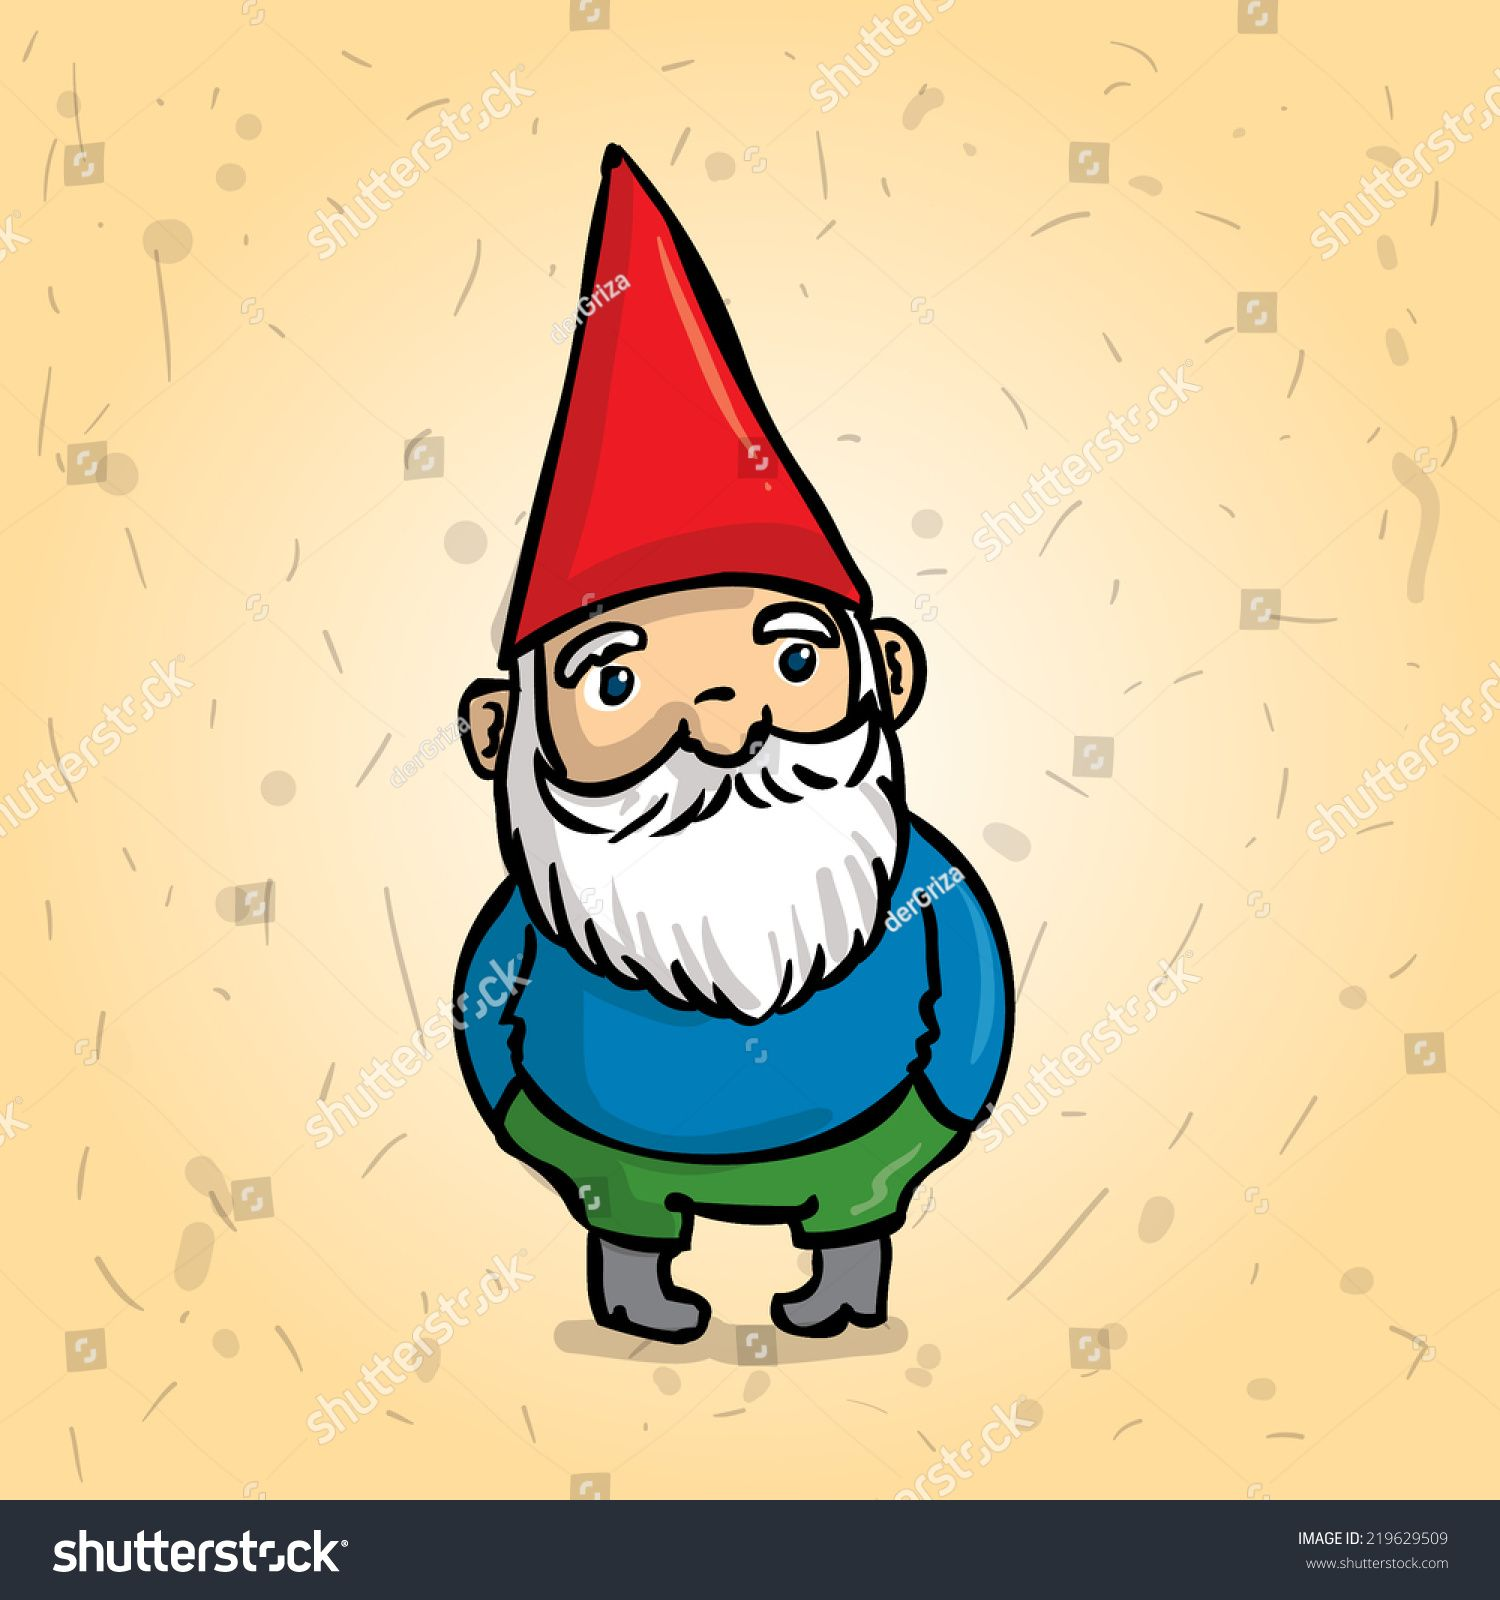 Image result for cute gnome drawings